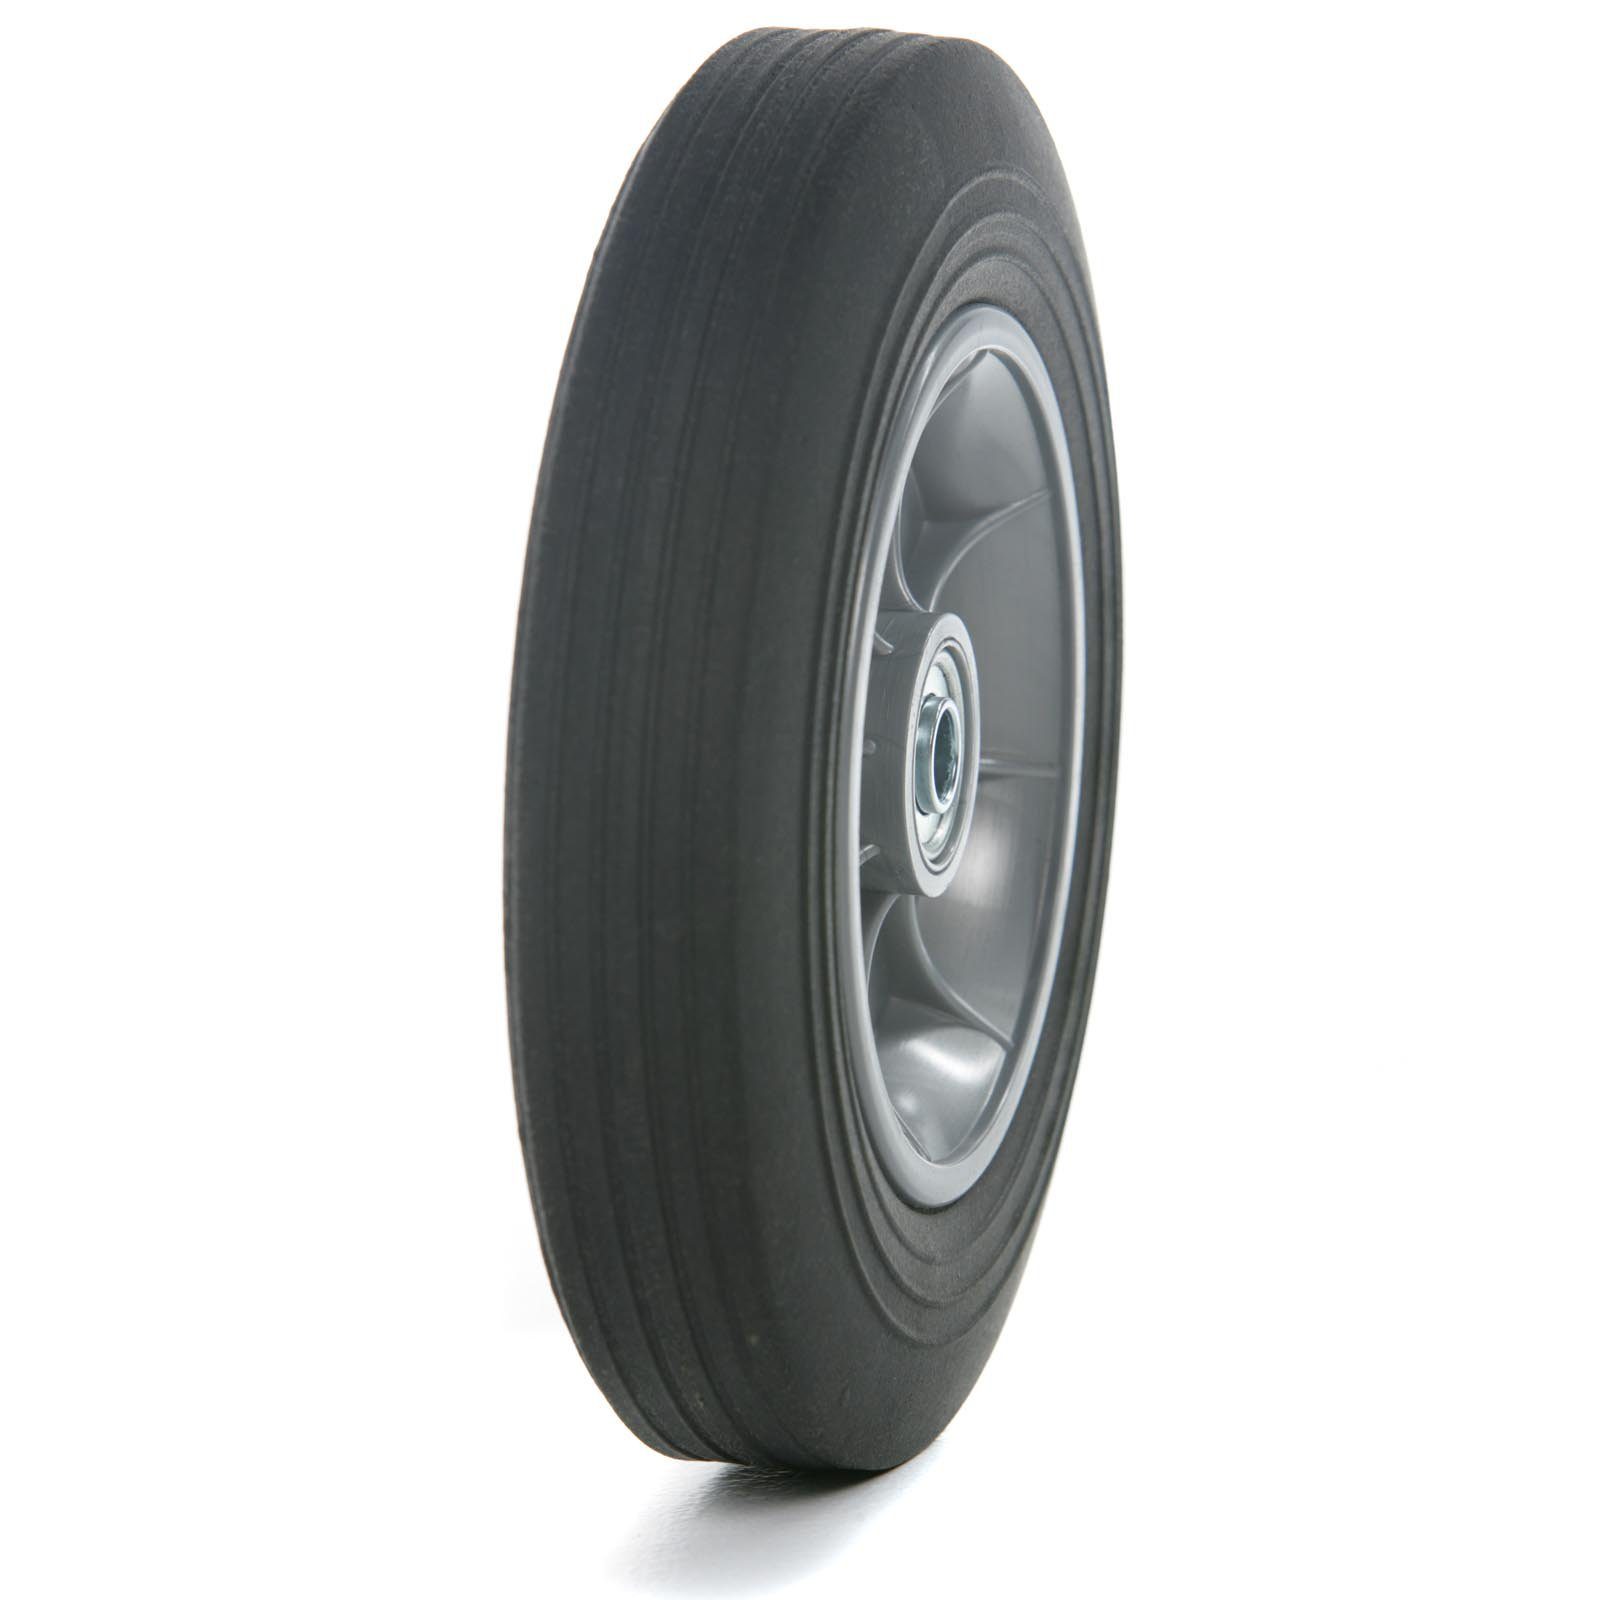 Harper 10 in Solid Rubber Wheel Walmart